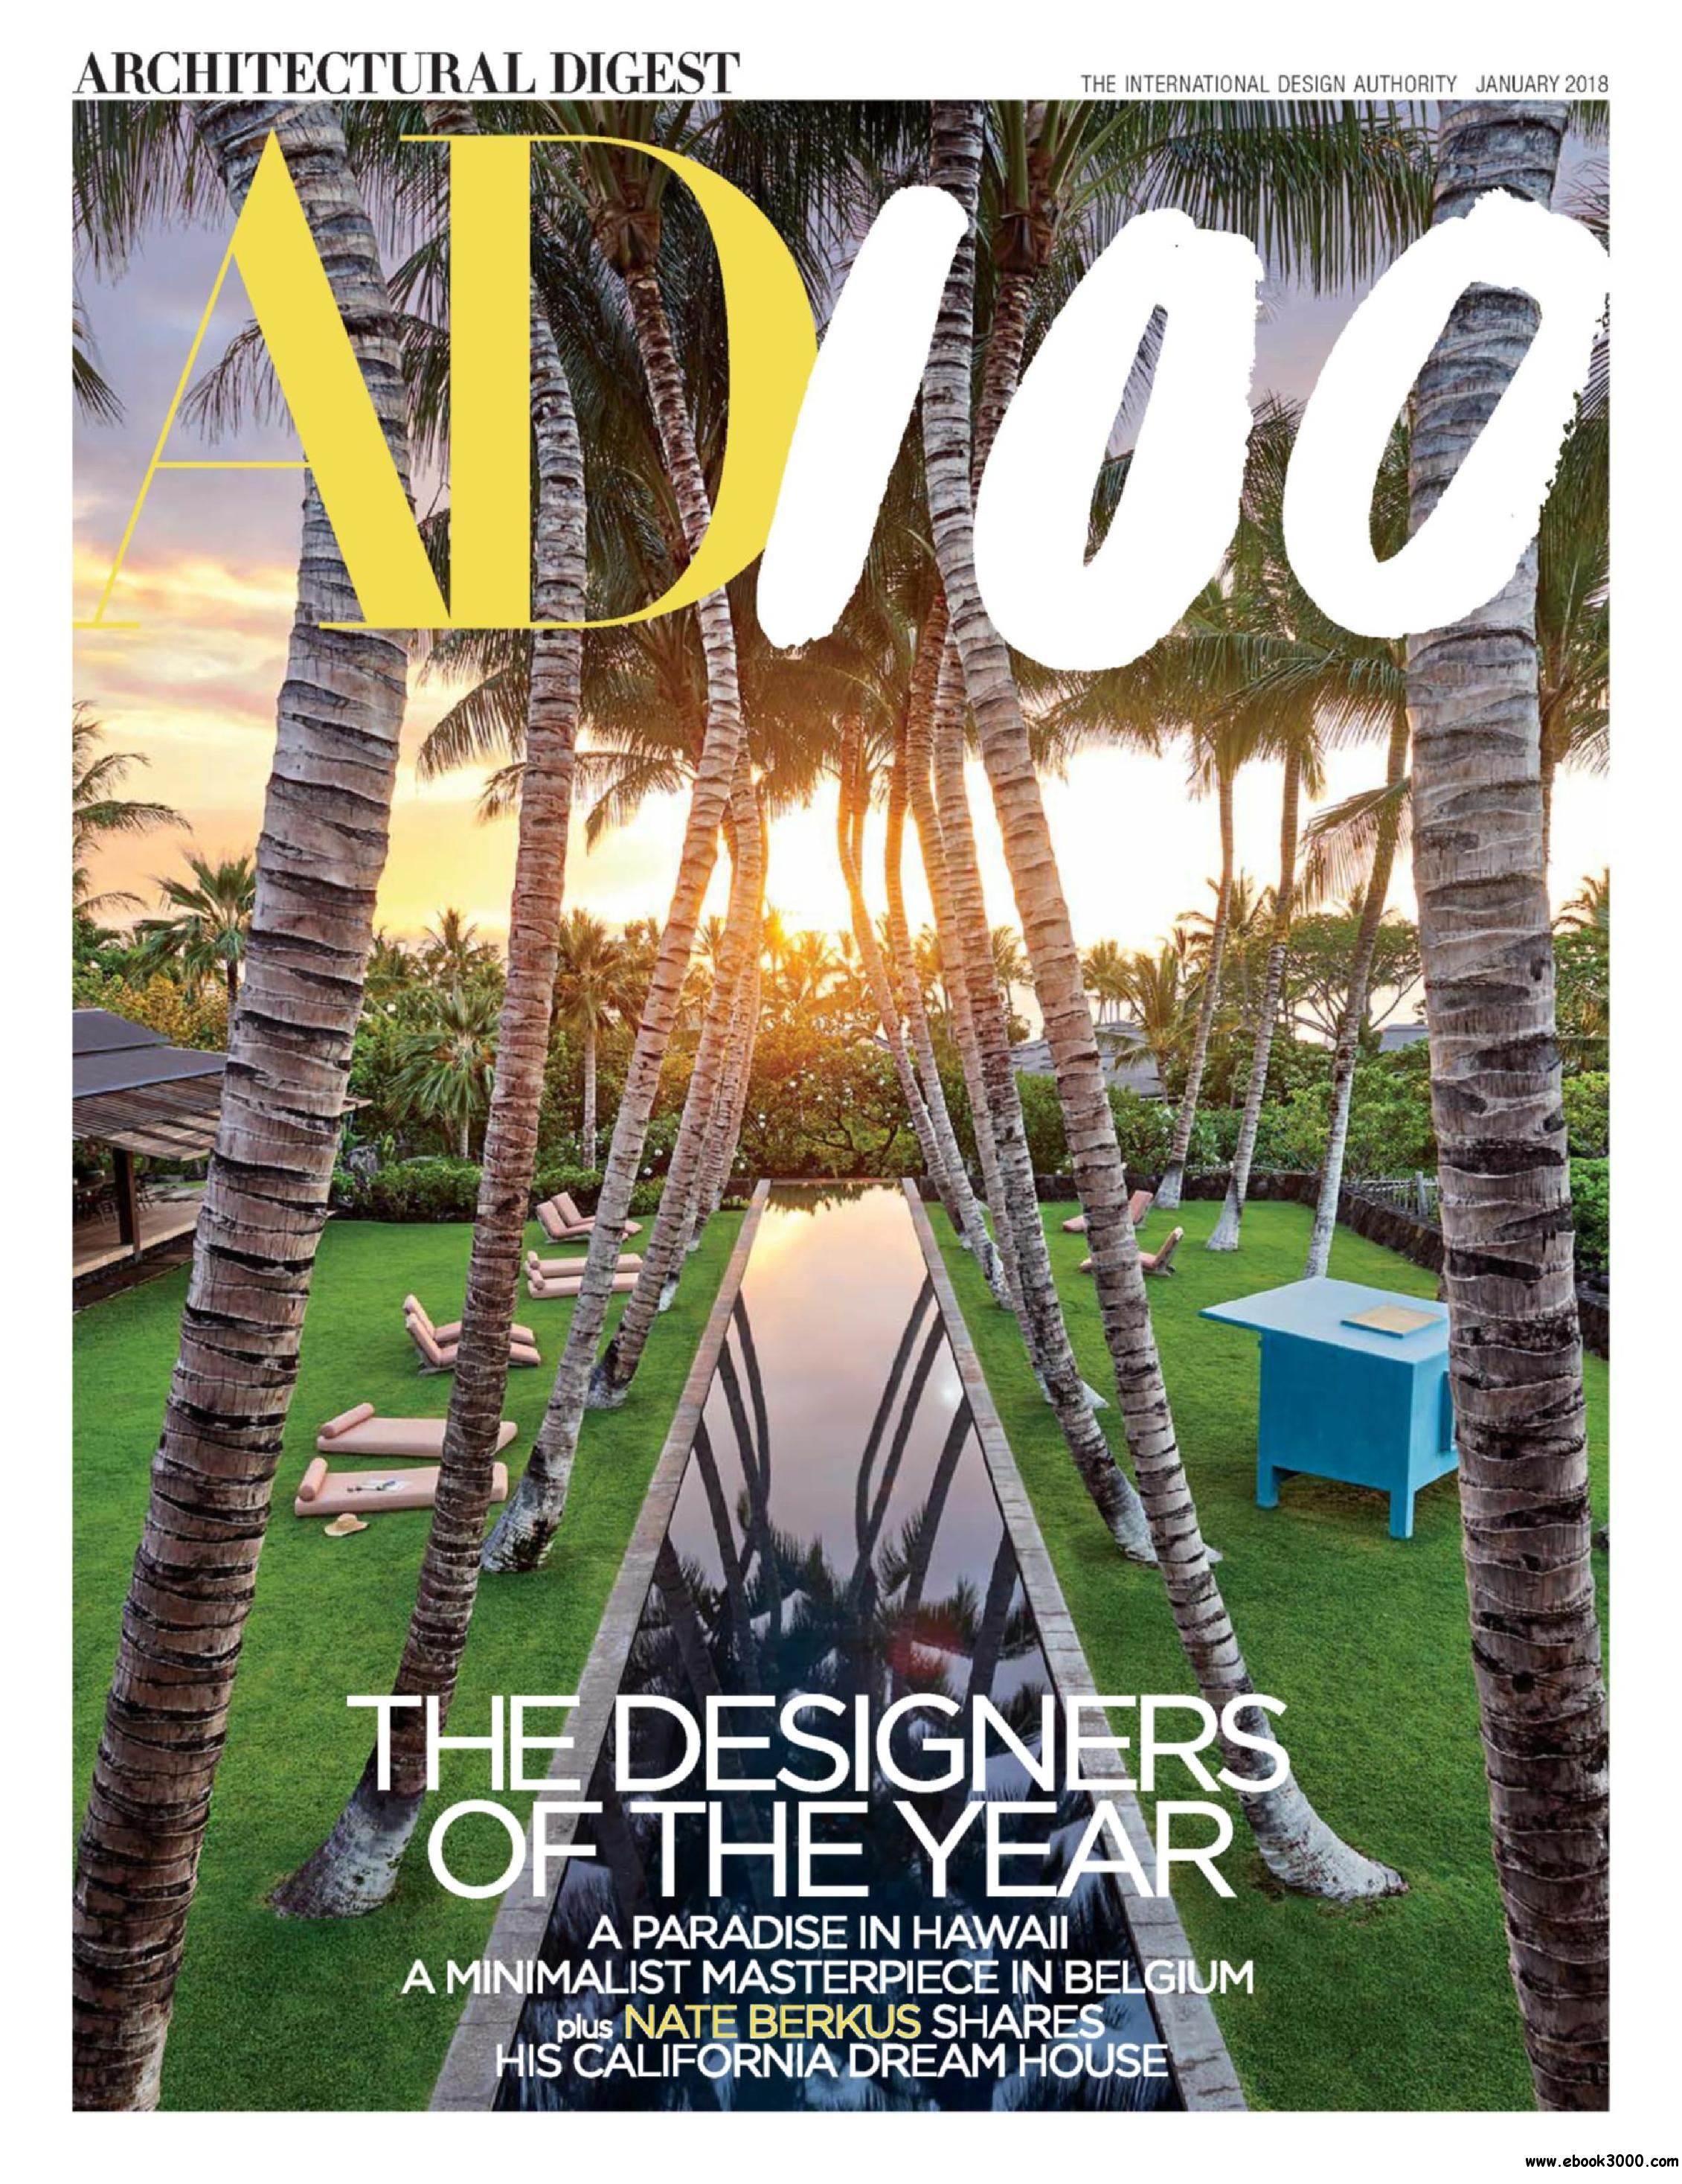 Architectural digest usa january 2018 free ebooks download for Free architectural magazines